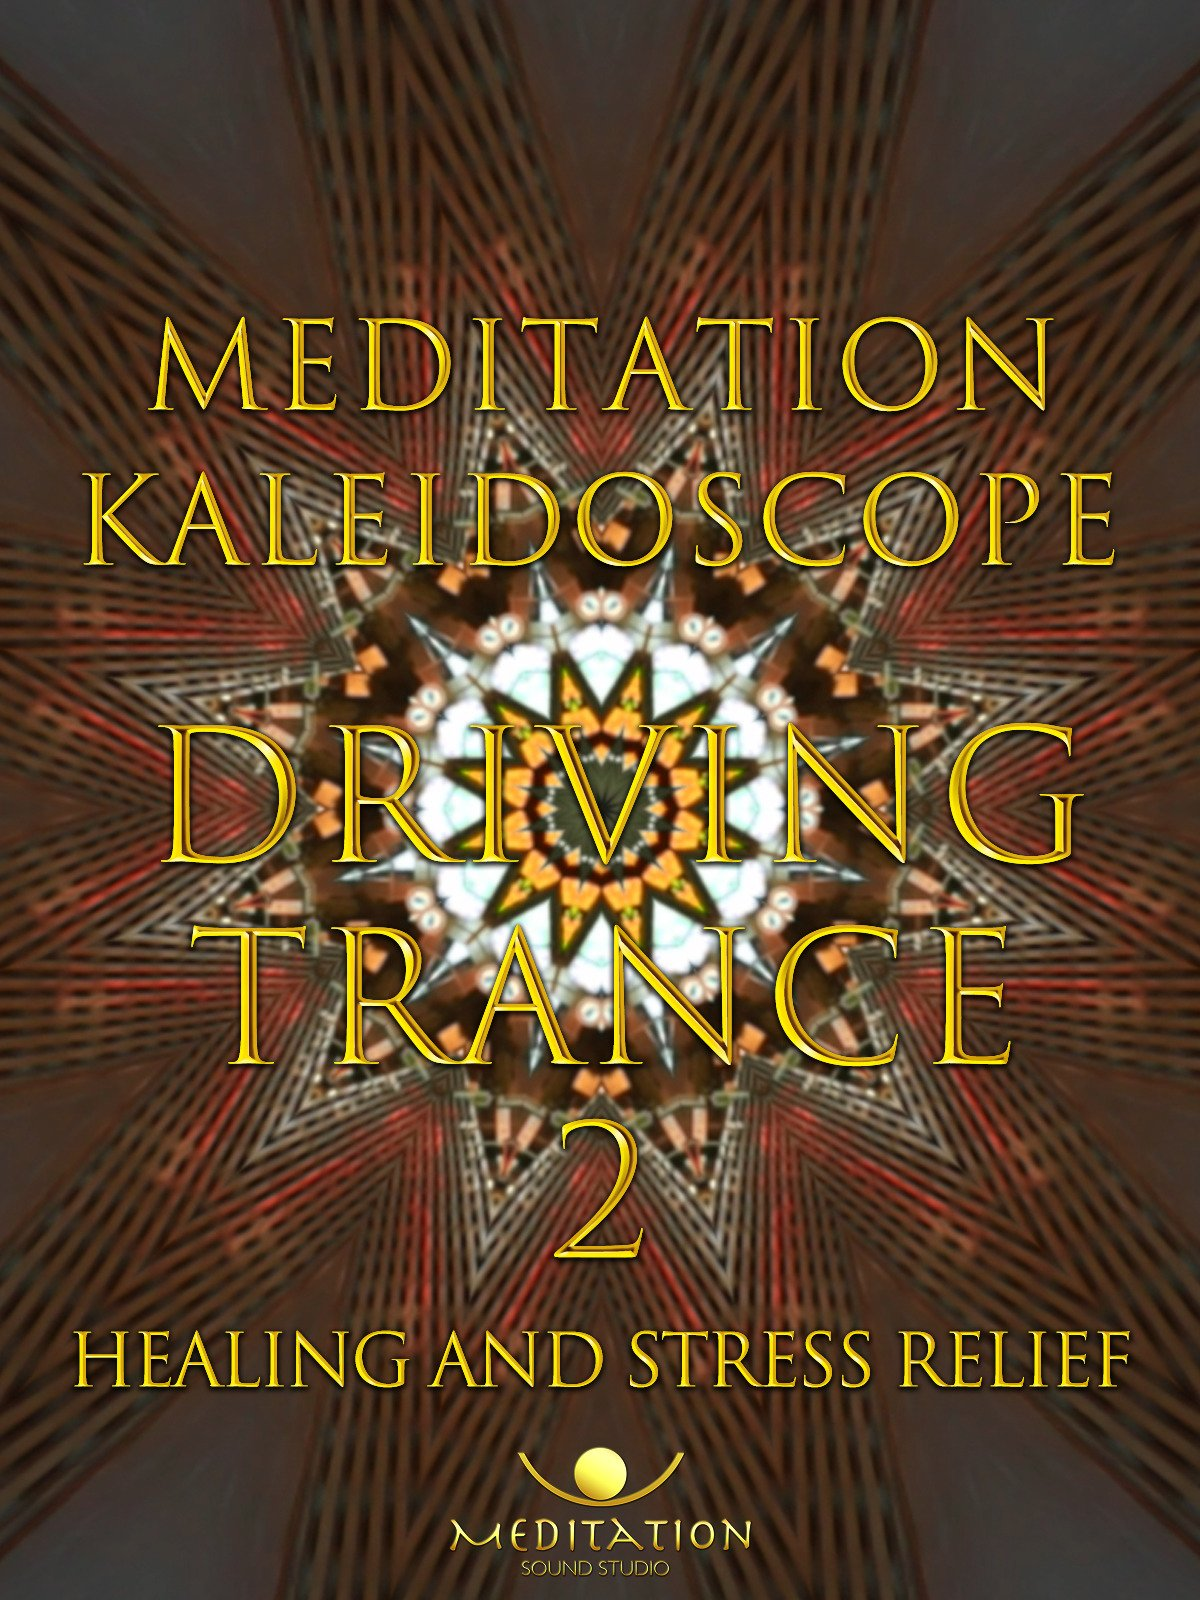 healing and stress relief meditation sound studio kaleidoscope driving trance 2